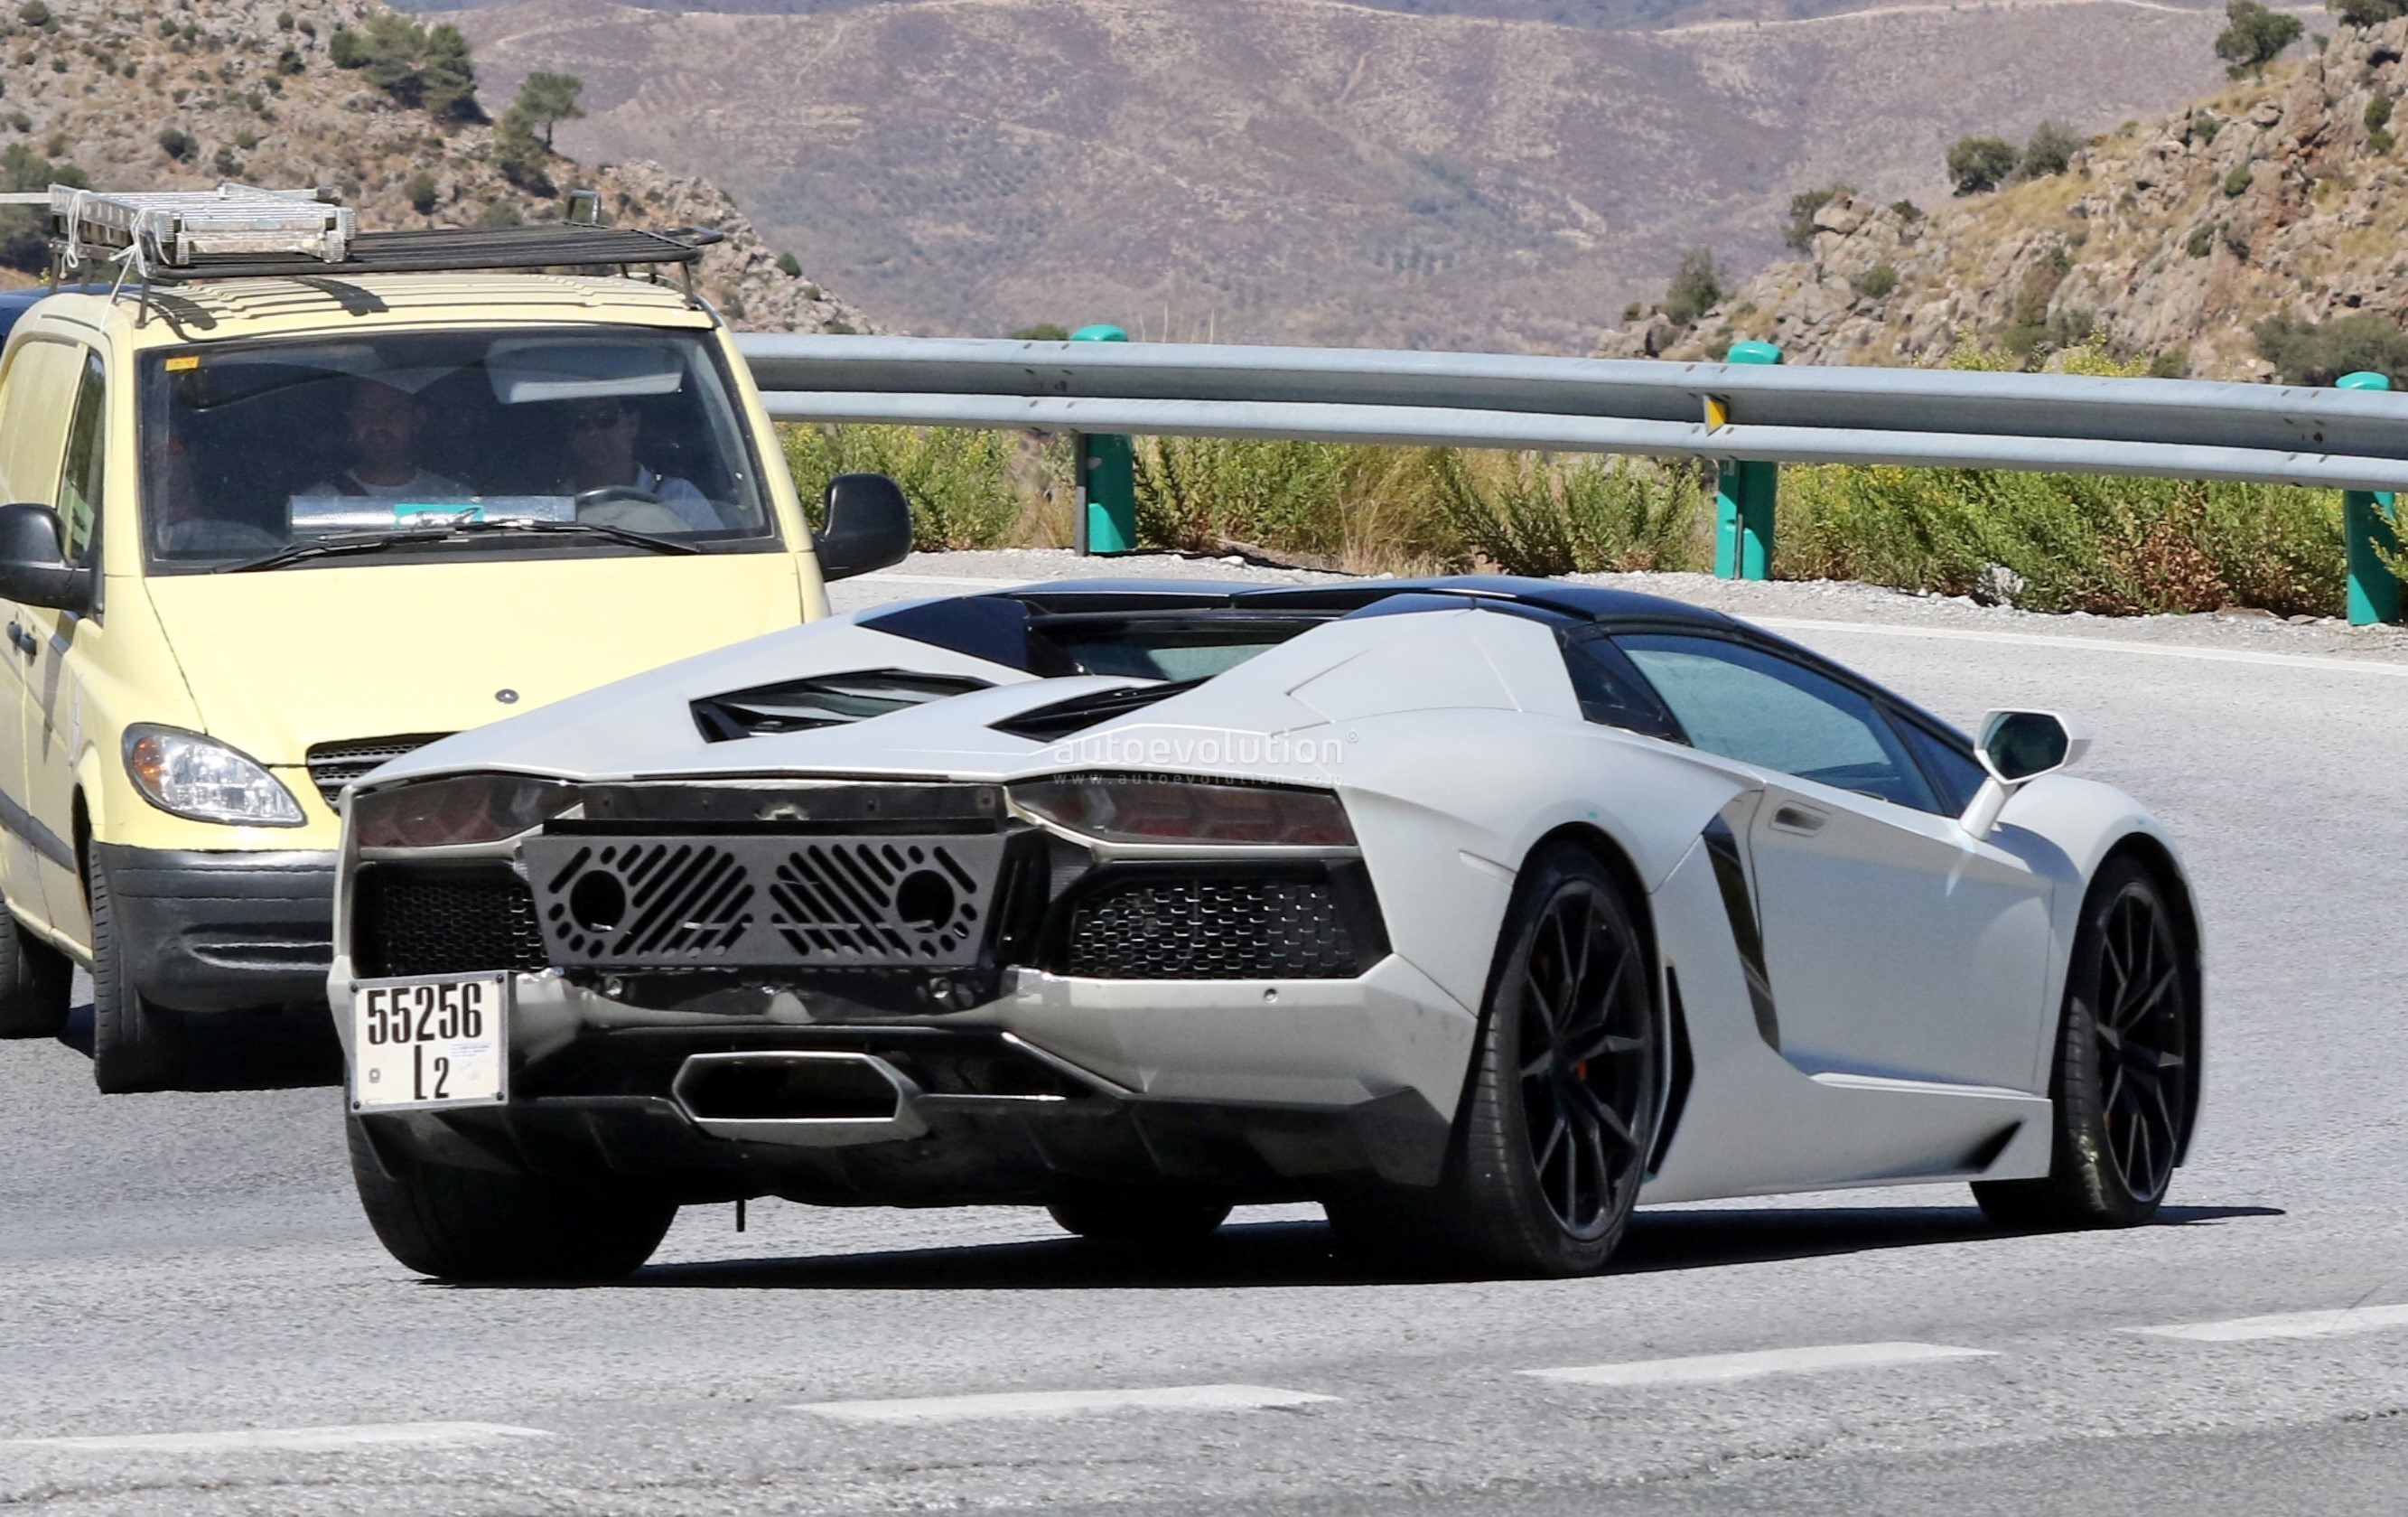 spy-pics-new-lamborghini-aventador-variant-incoming-could-be-the-performante_8